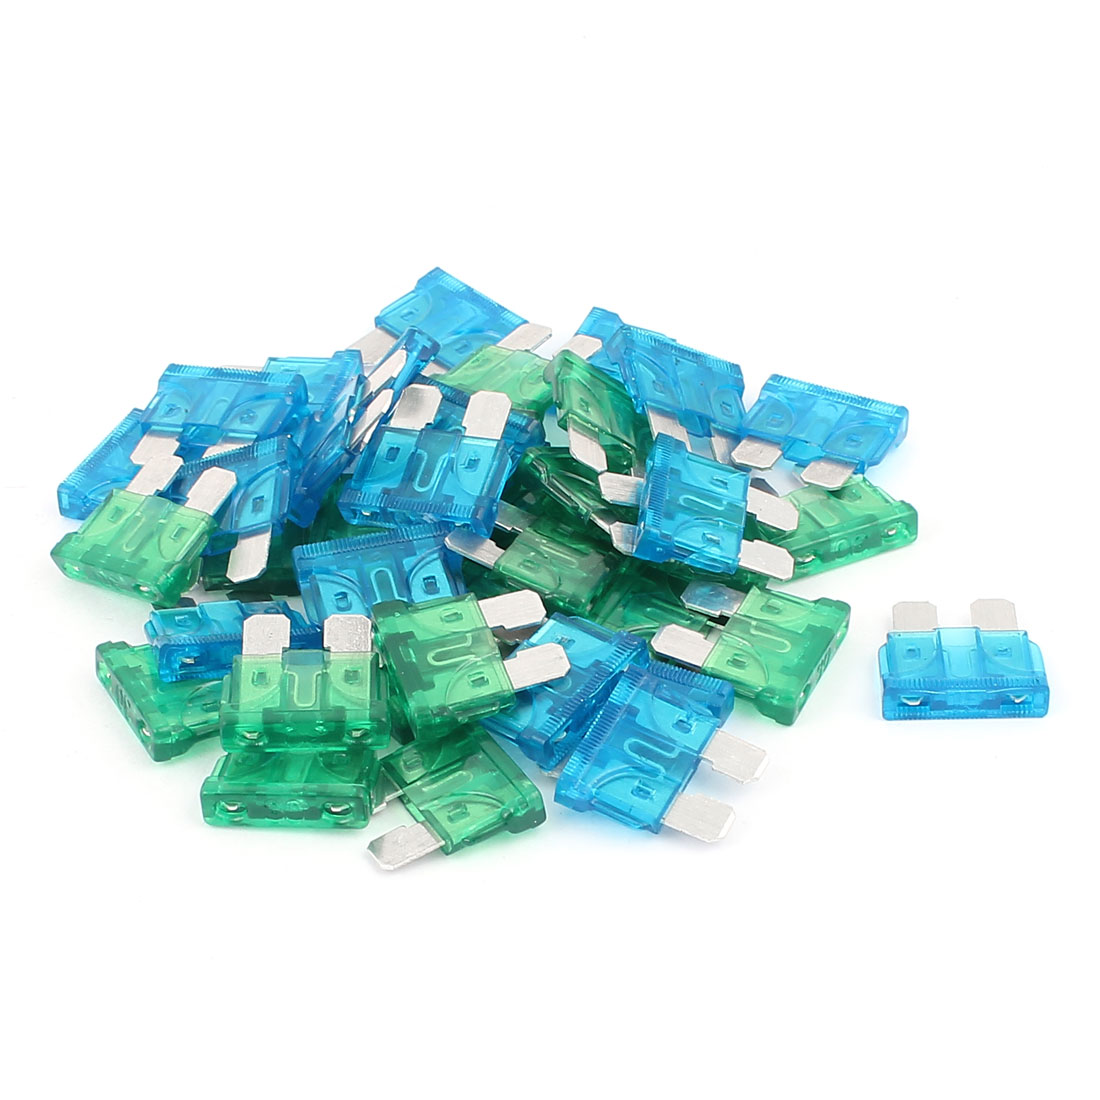 40pcs Blue Green 15A 30A Mini Blade Fuses for Car Caravan Truck Vehicle Motorbike Auto